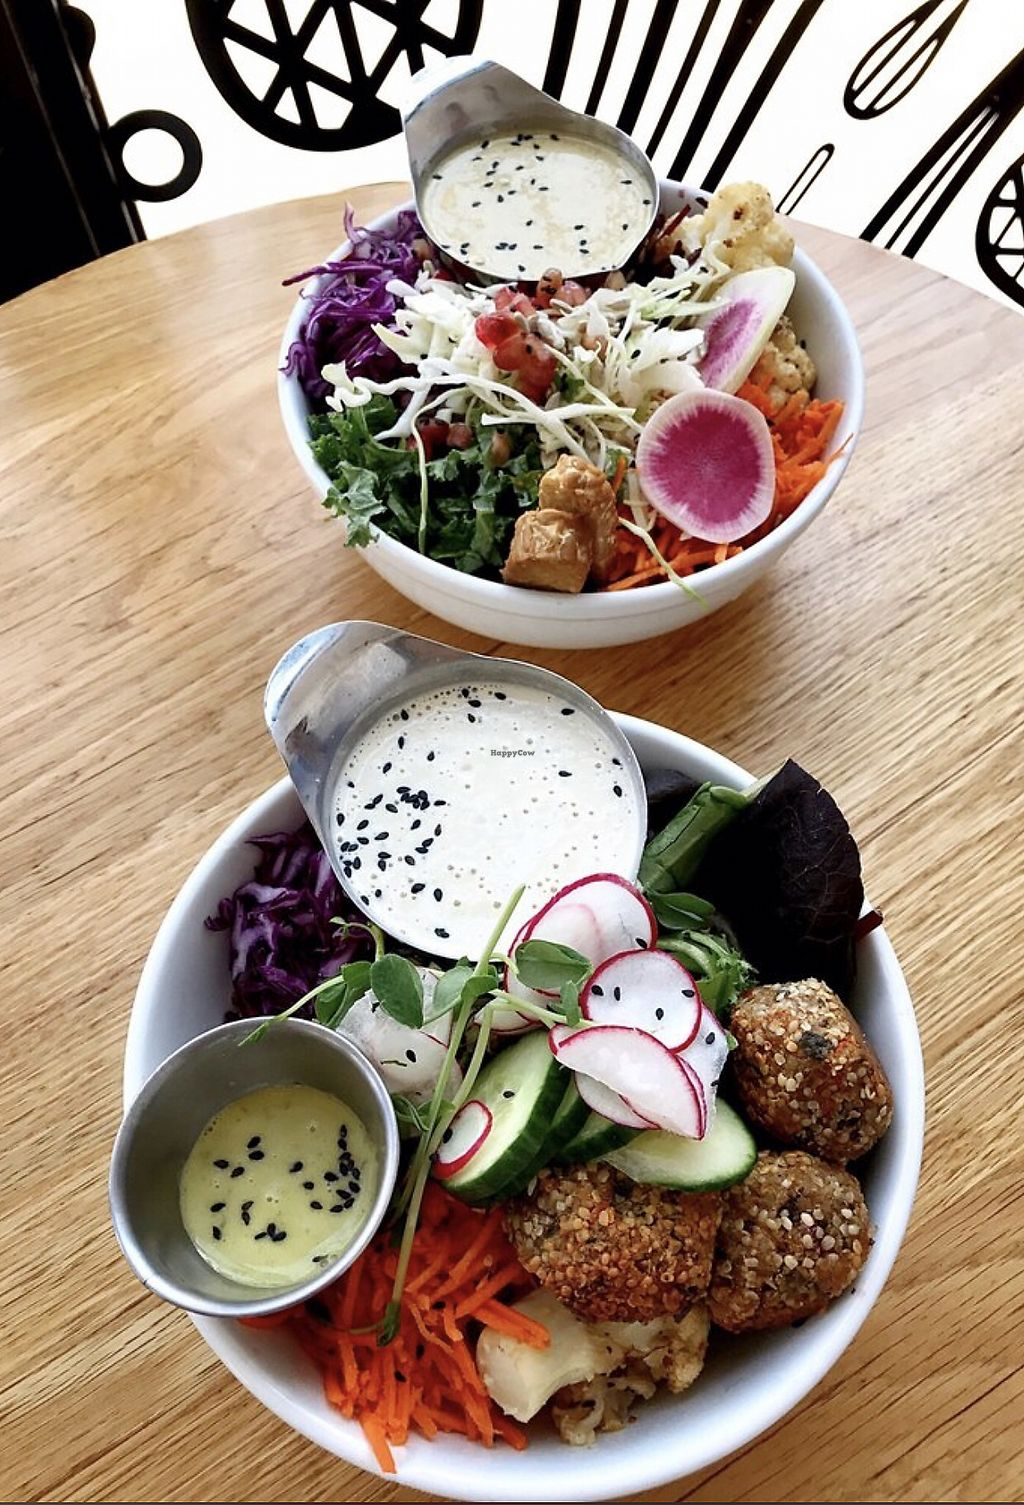 """Photo of Kupfert & Kim - Spadina  by <a href=""""/members/profile/Dimanta"""">Dimanta</a> <br/>Falafel Salad <br/> March 5, 2018  - <a href='/contact/abuse/image/71858/366942'>Report</a>"""